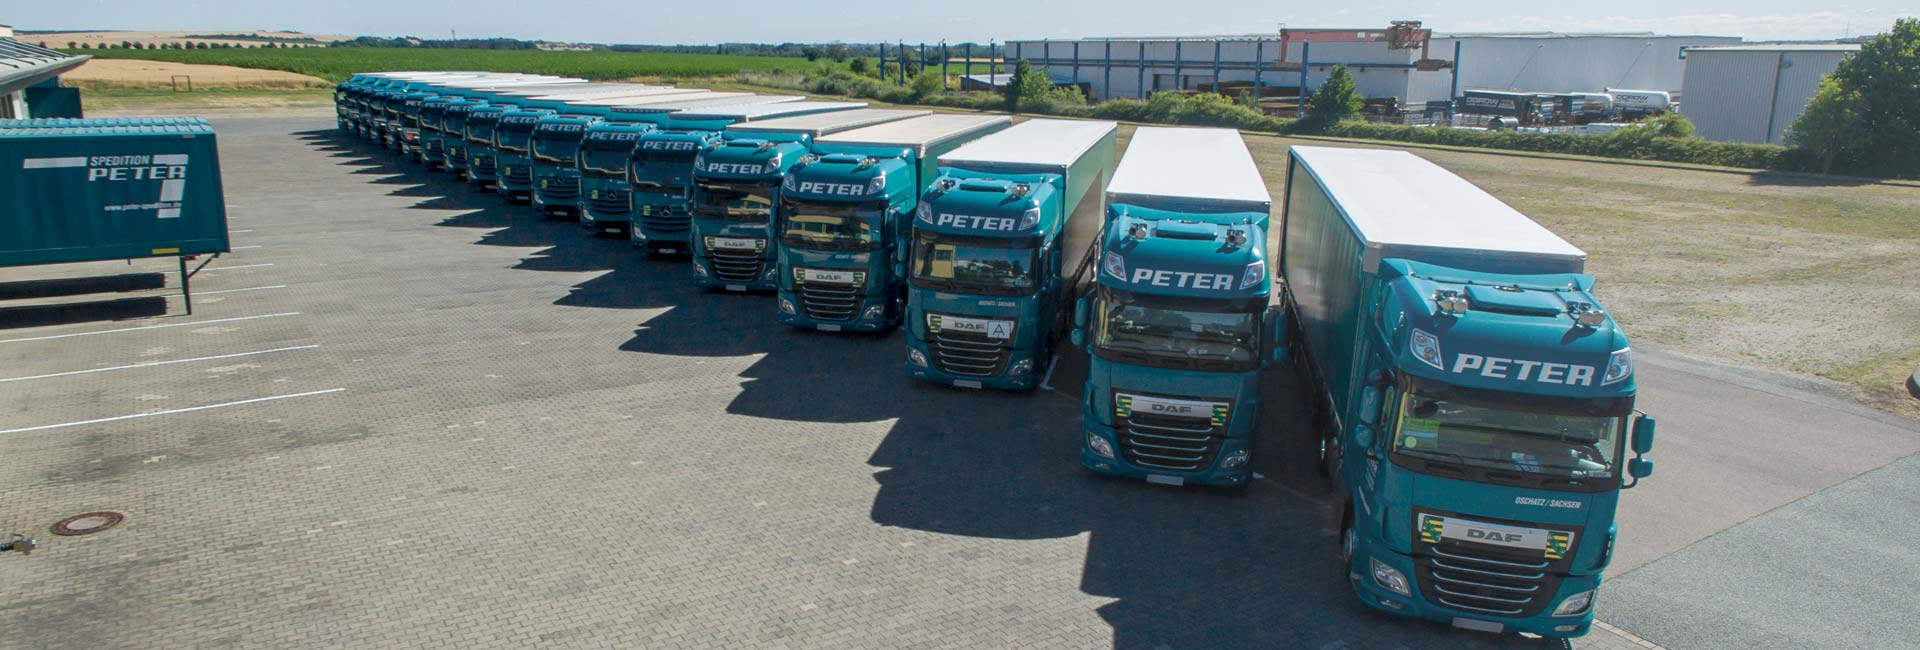 LKW Parade Spedition Peter